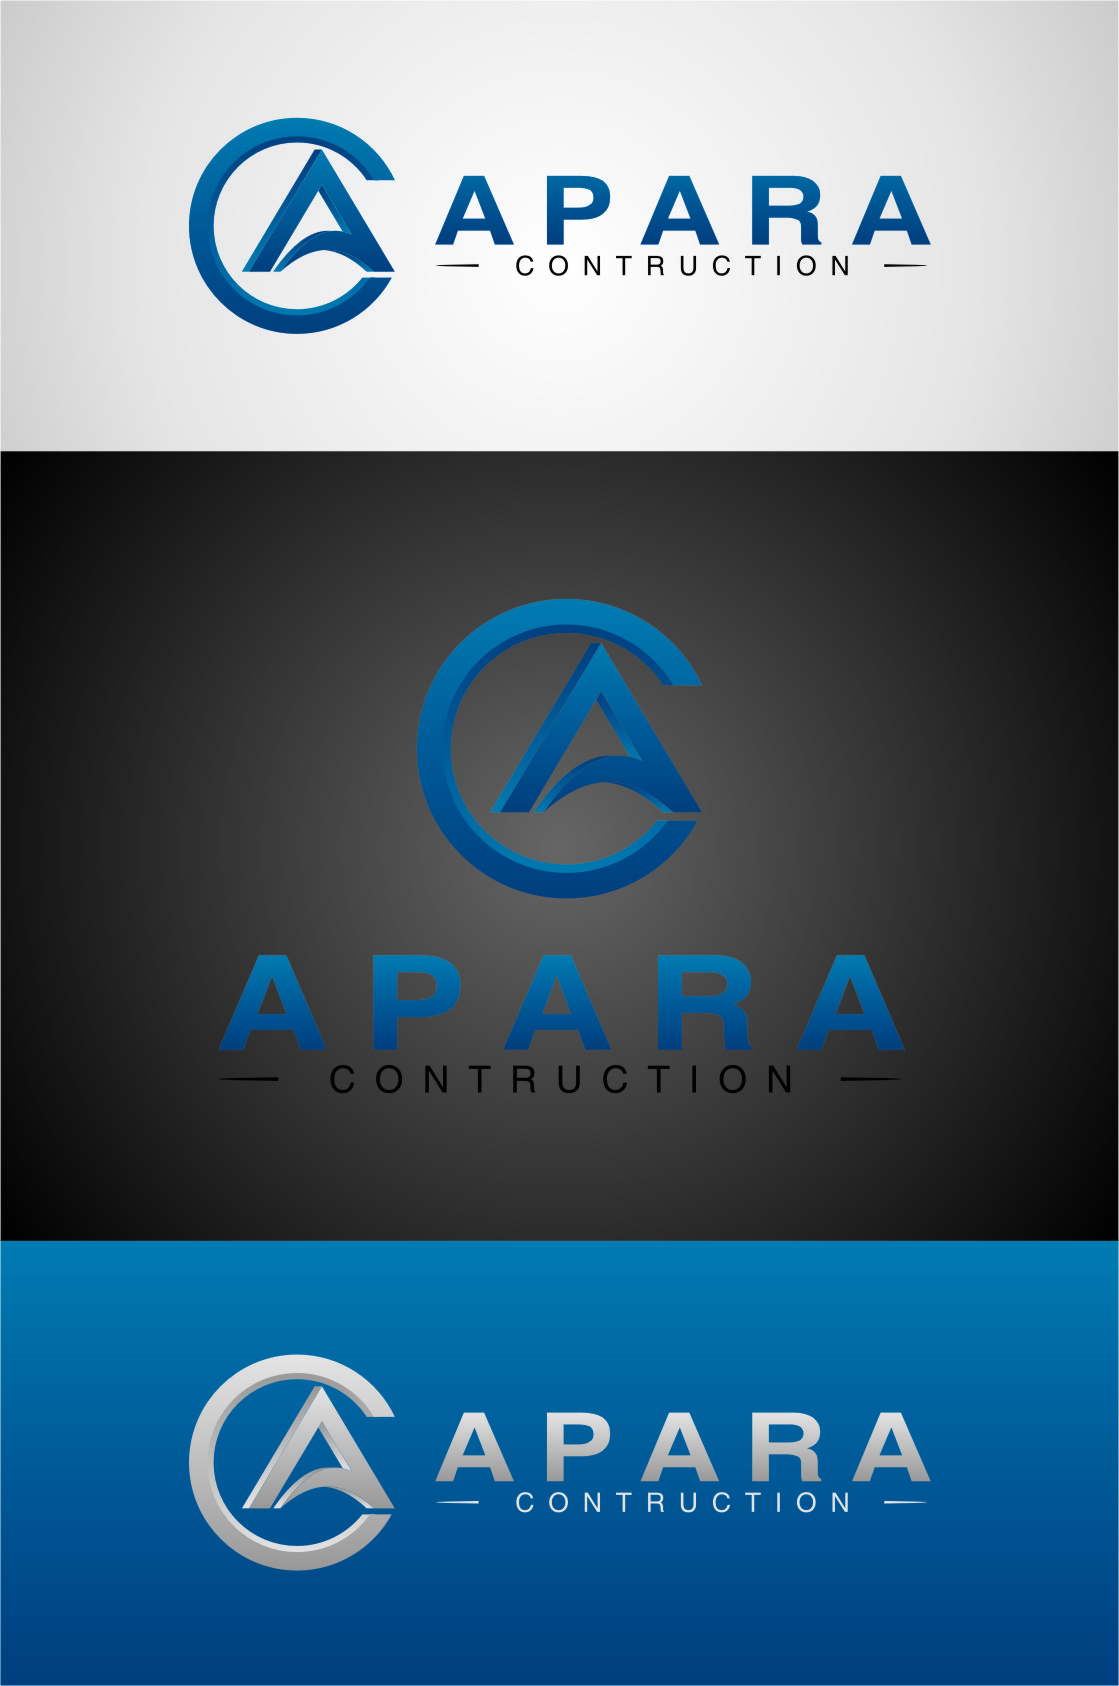 Logo Design by RoSyid Rono-Rene On Java - Entry No. 142 in the Logo Design Contest Apara Construction Logo Design.